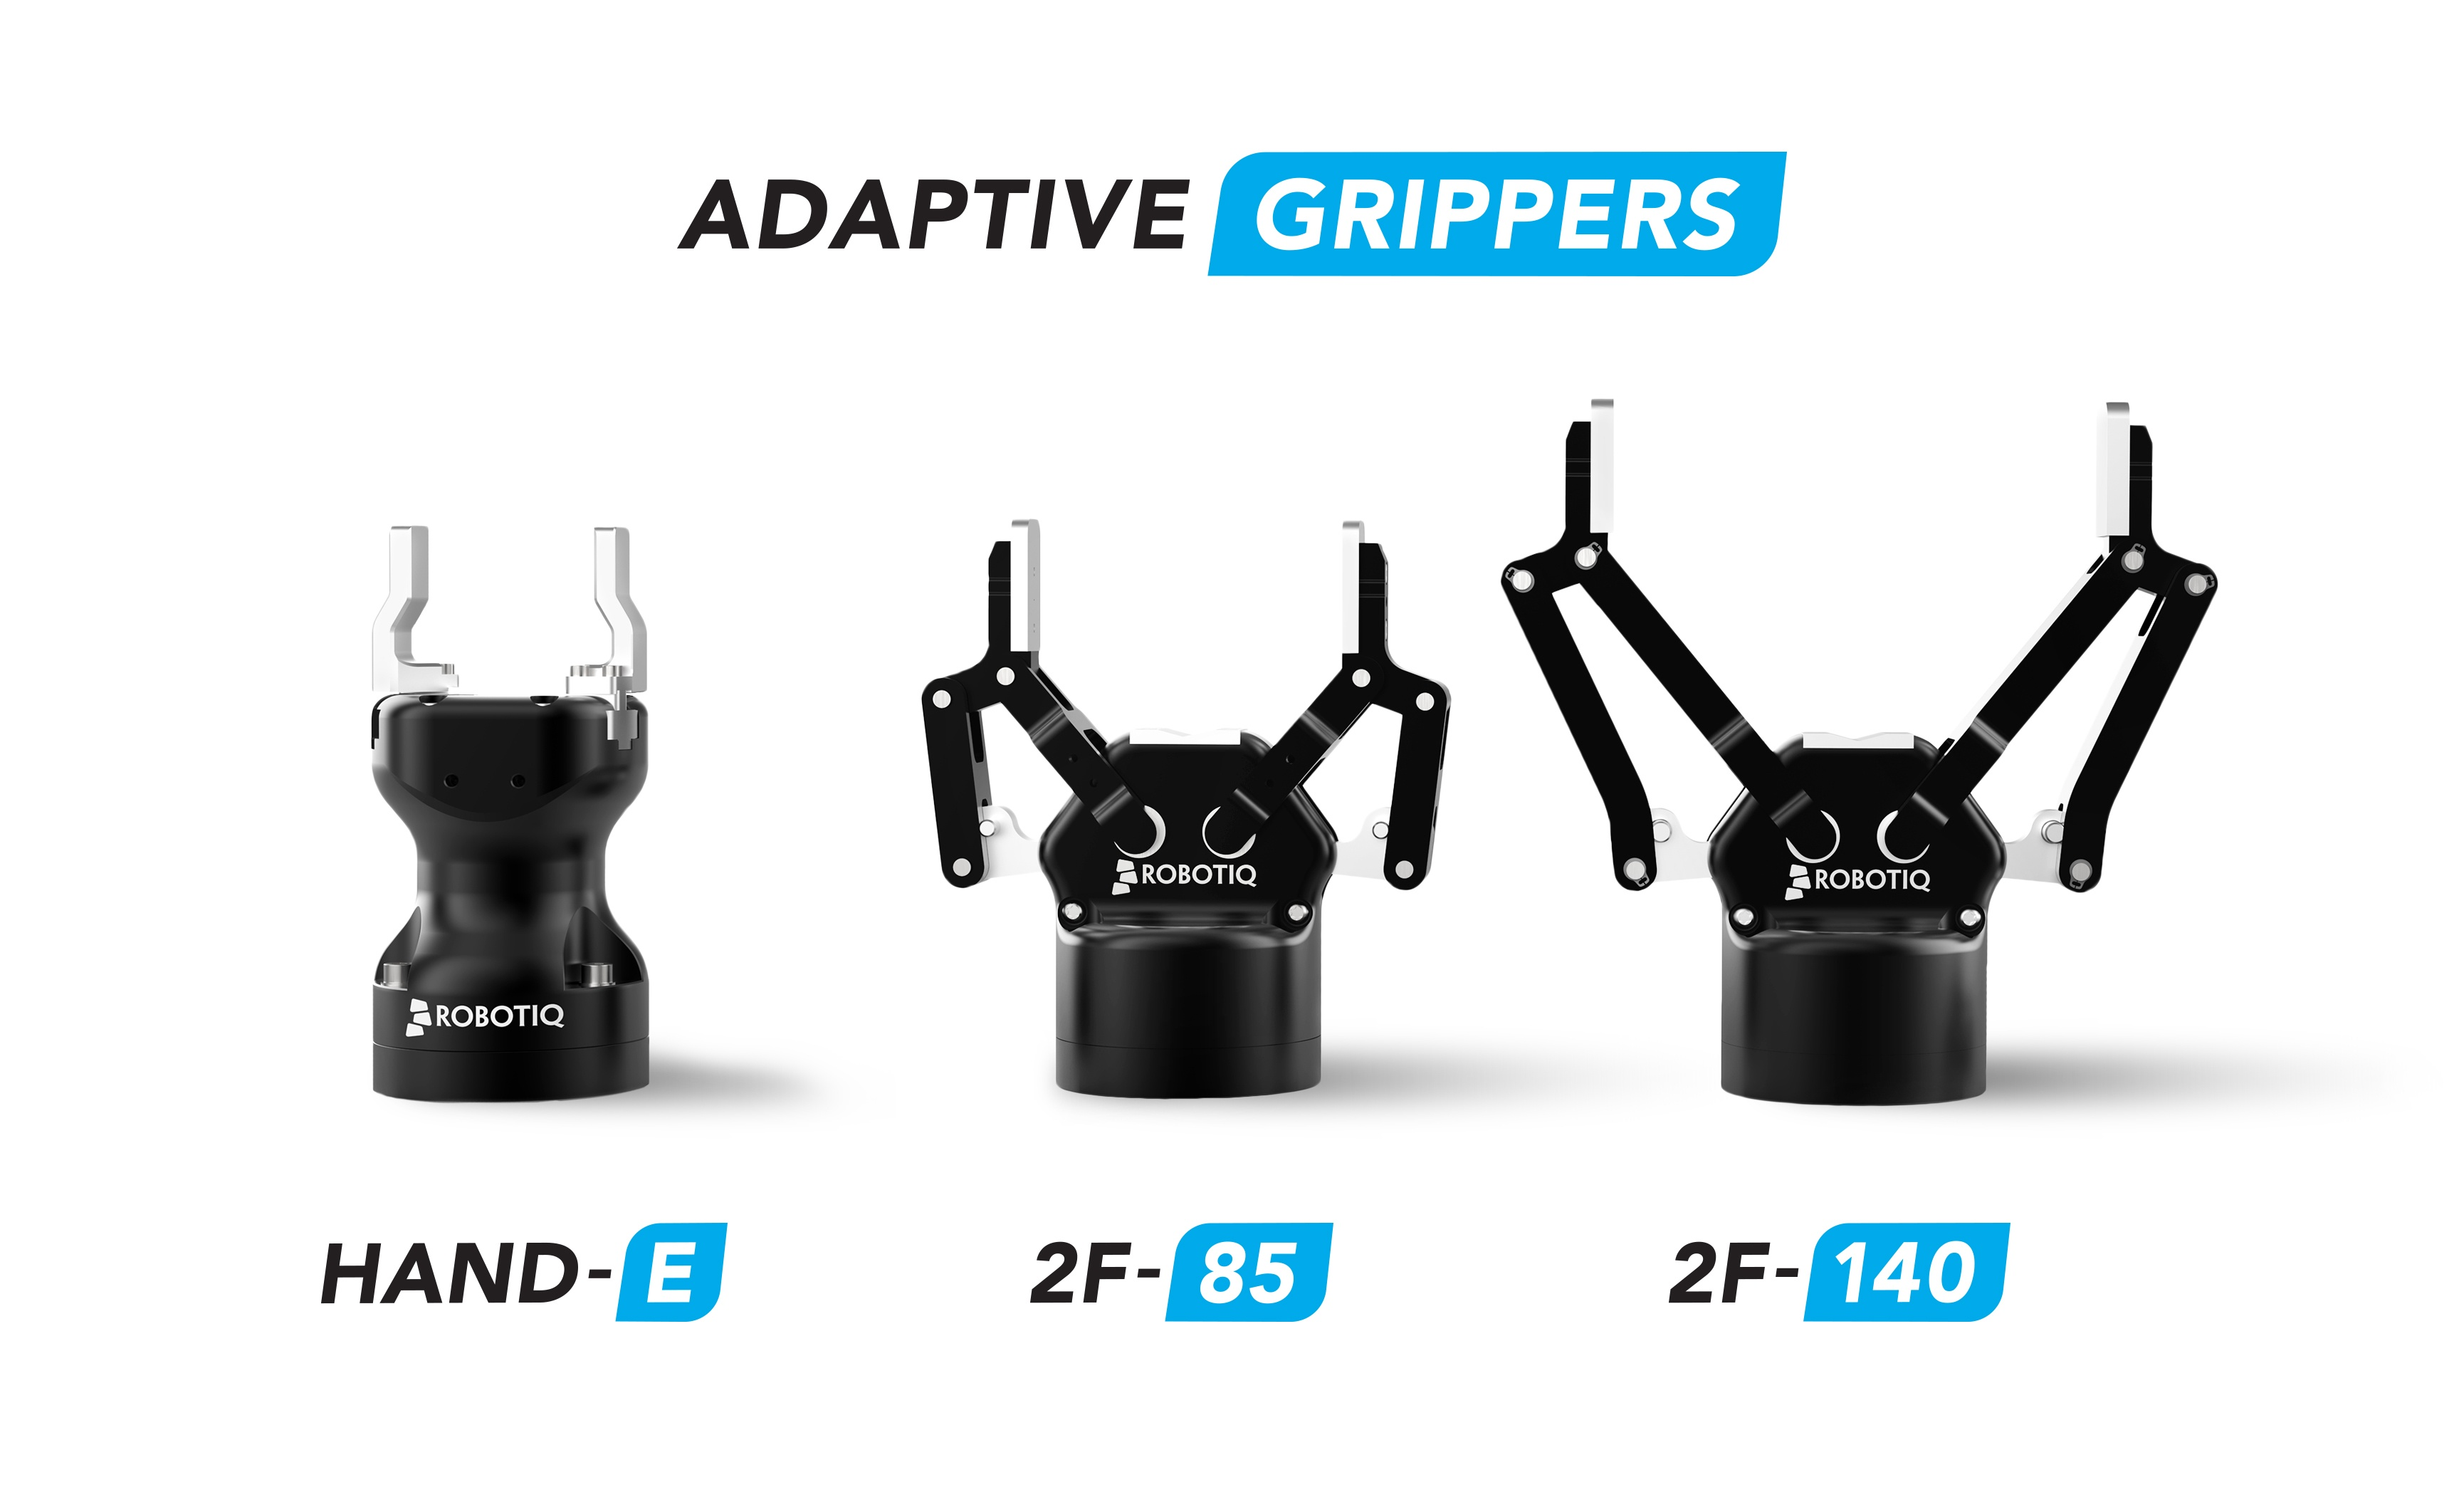 robotiq adaptative grippers family